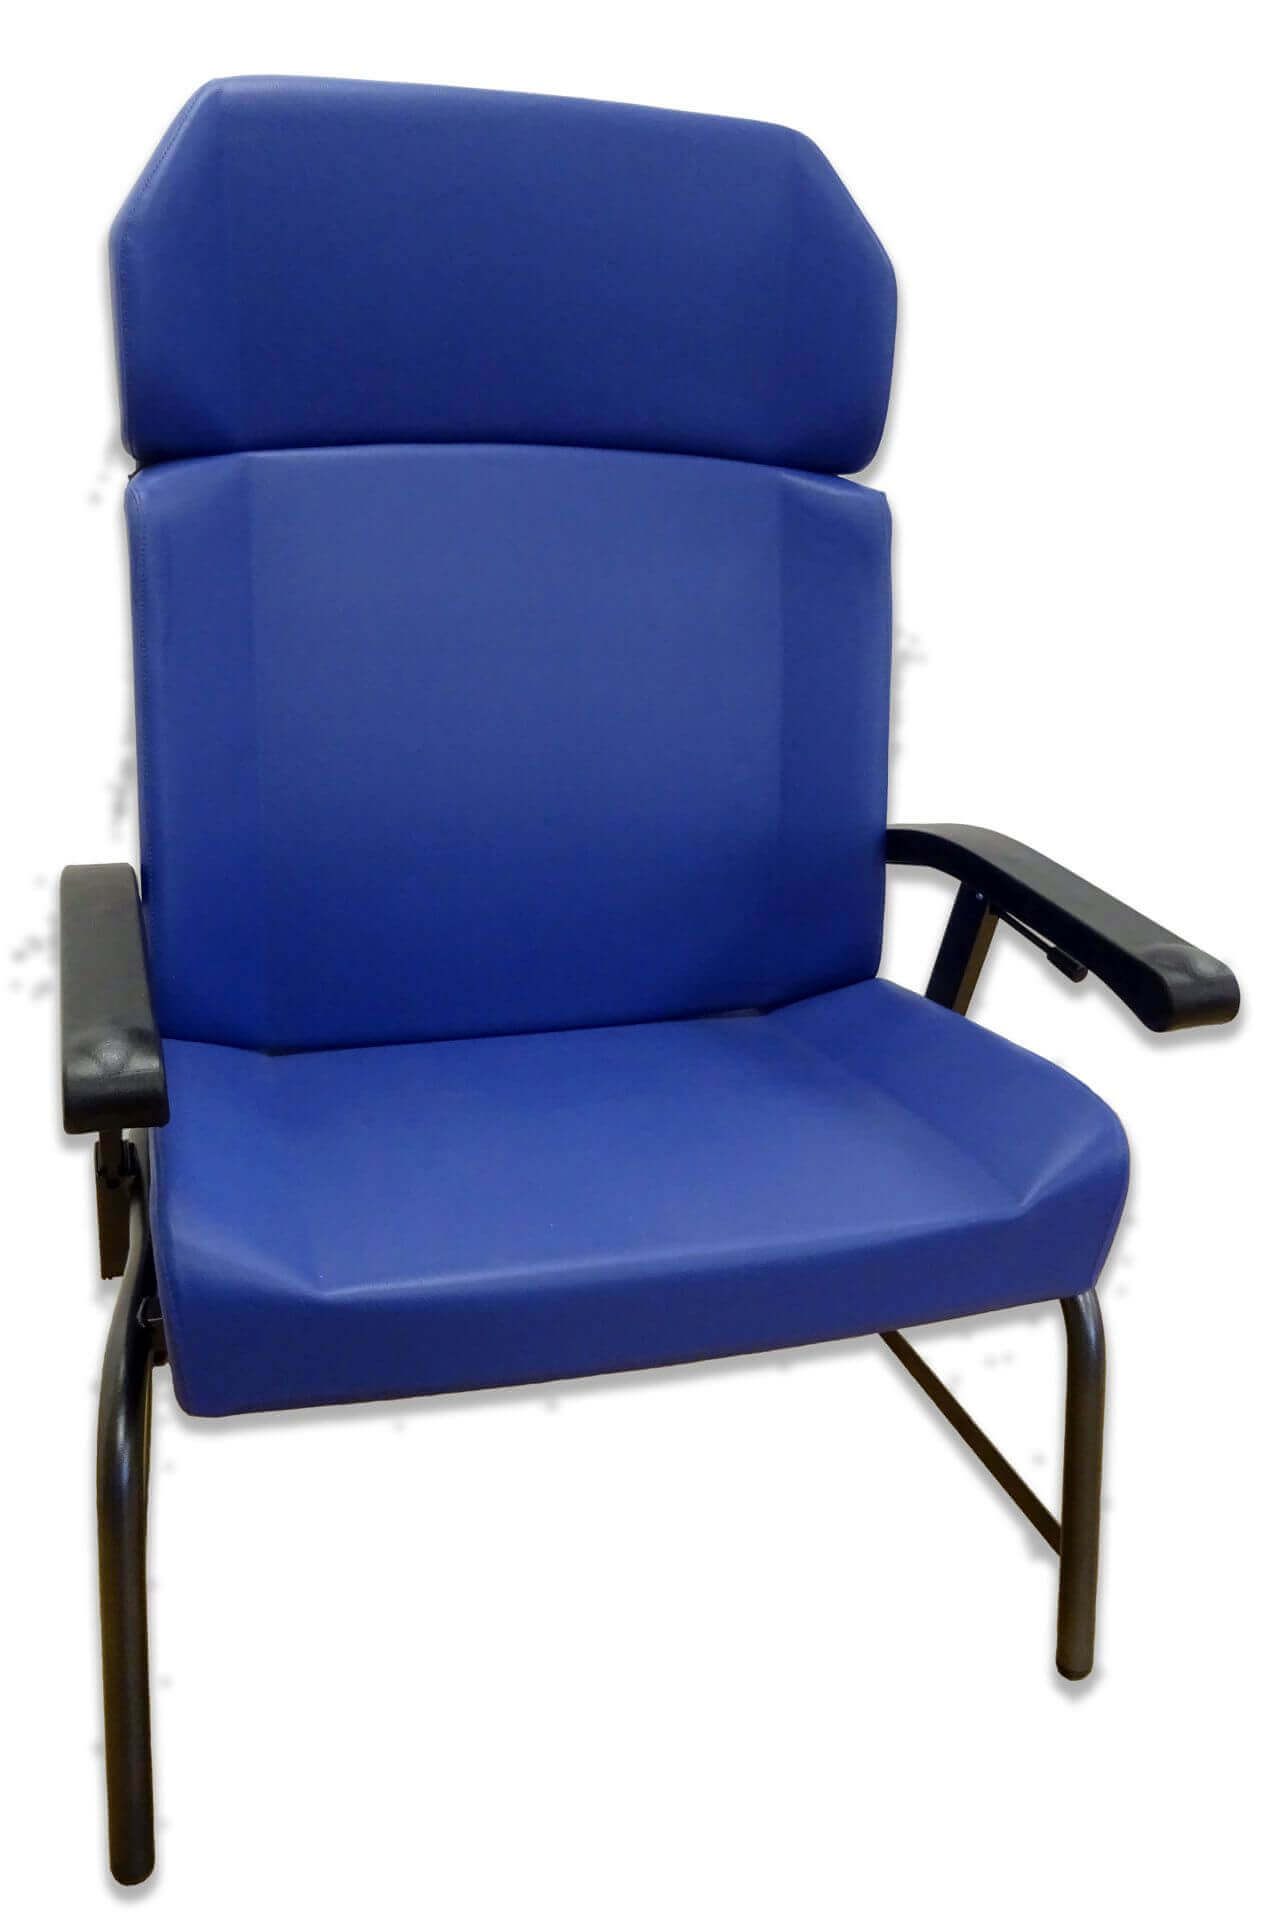 seat high chair wheel rentals bariatric back for hire or sale